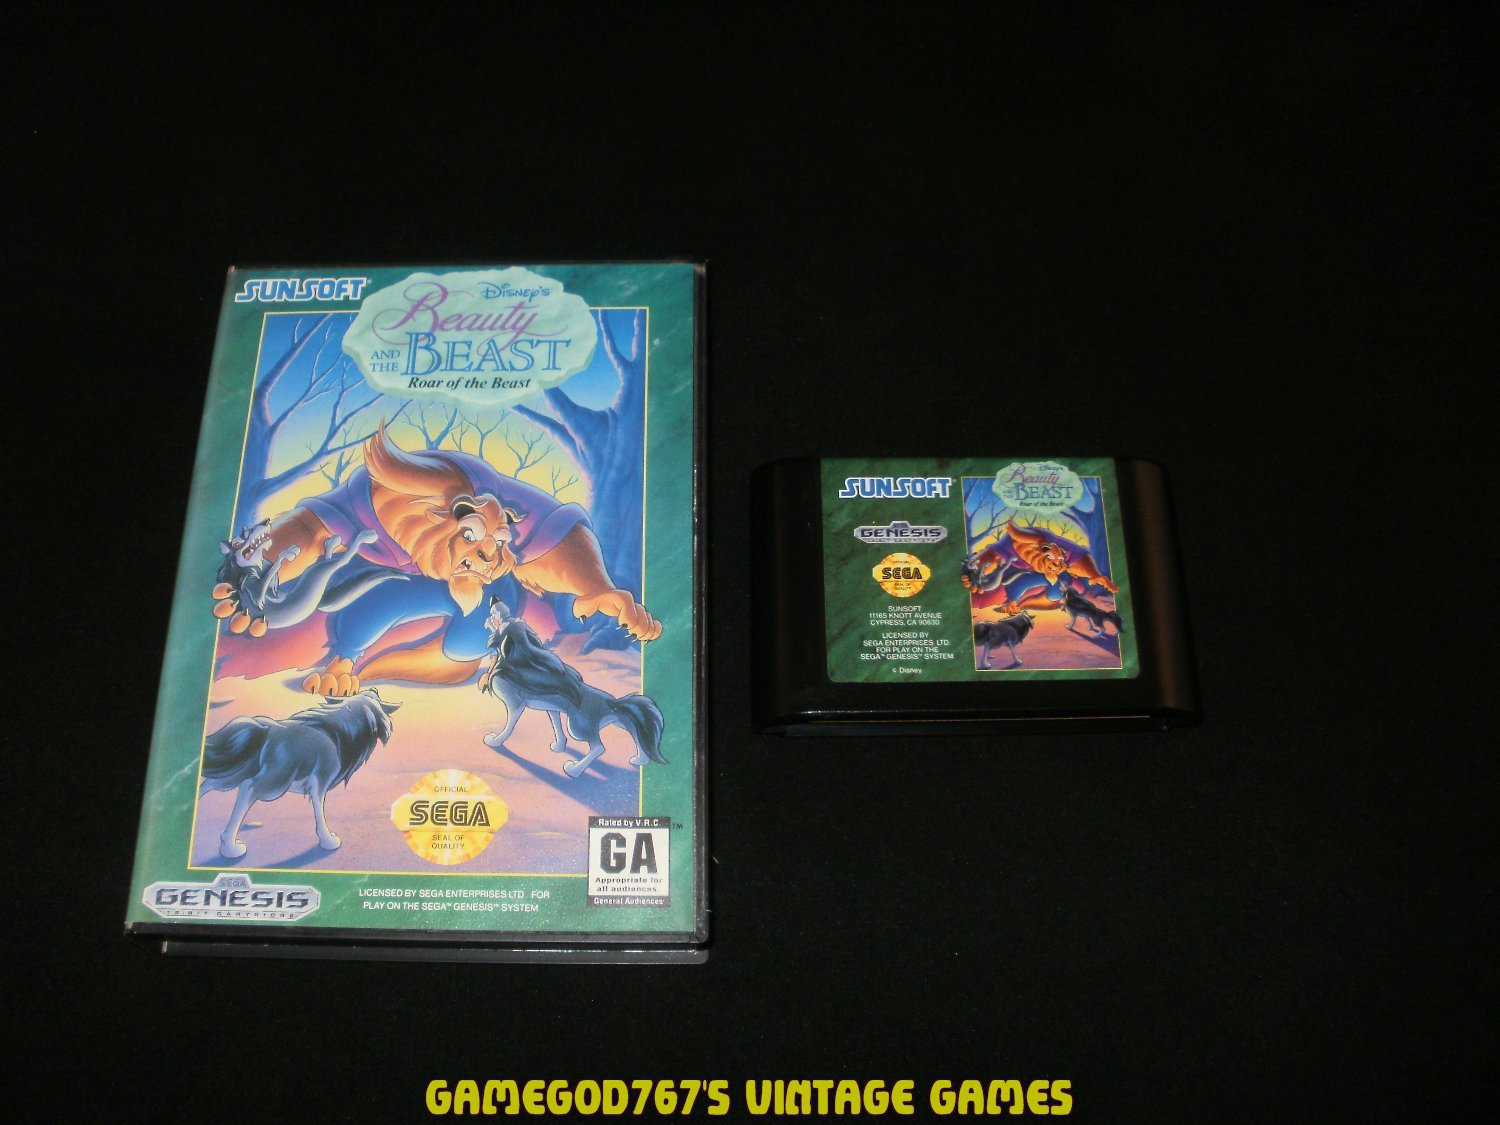 Beauty and the Beast Roar of the Beast - Sega Genesis - With Box